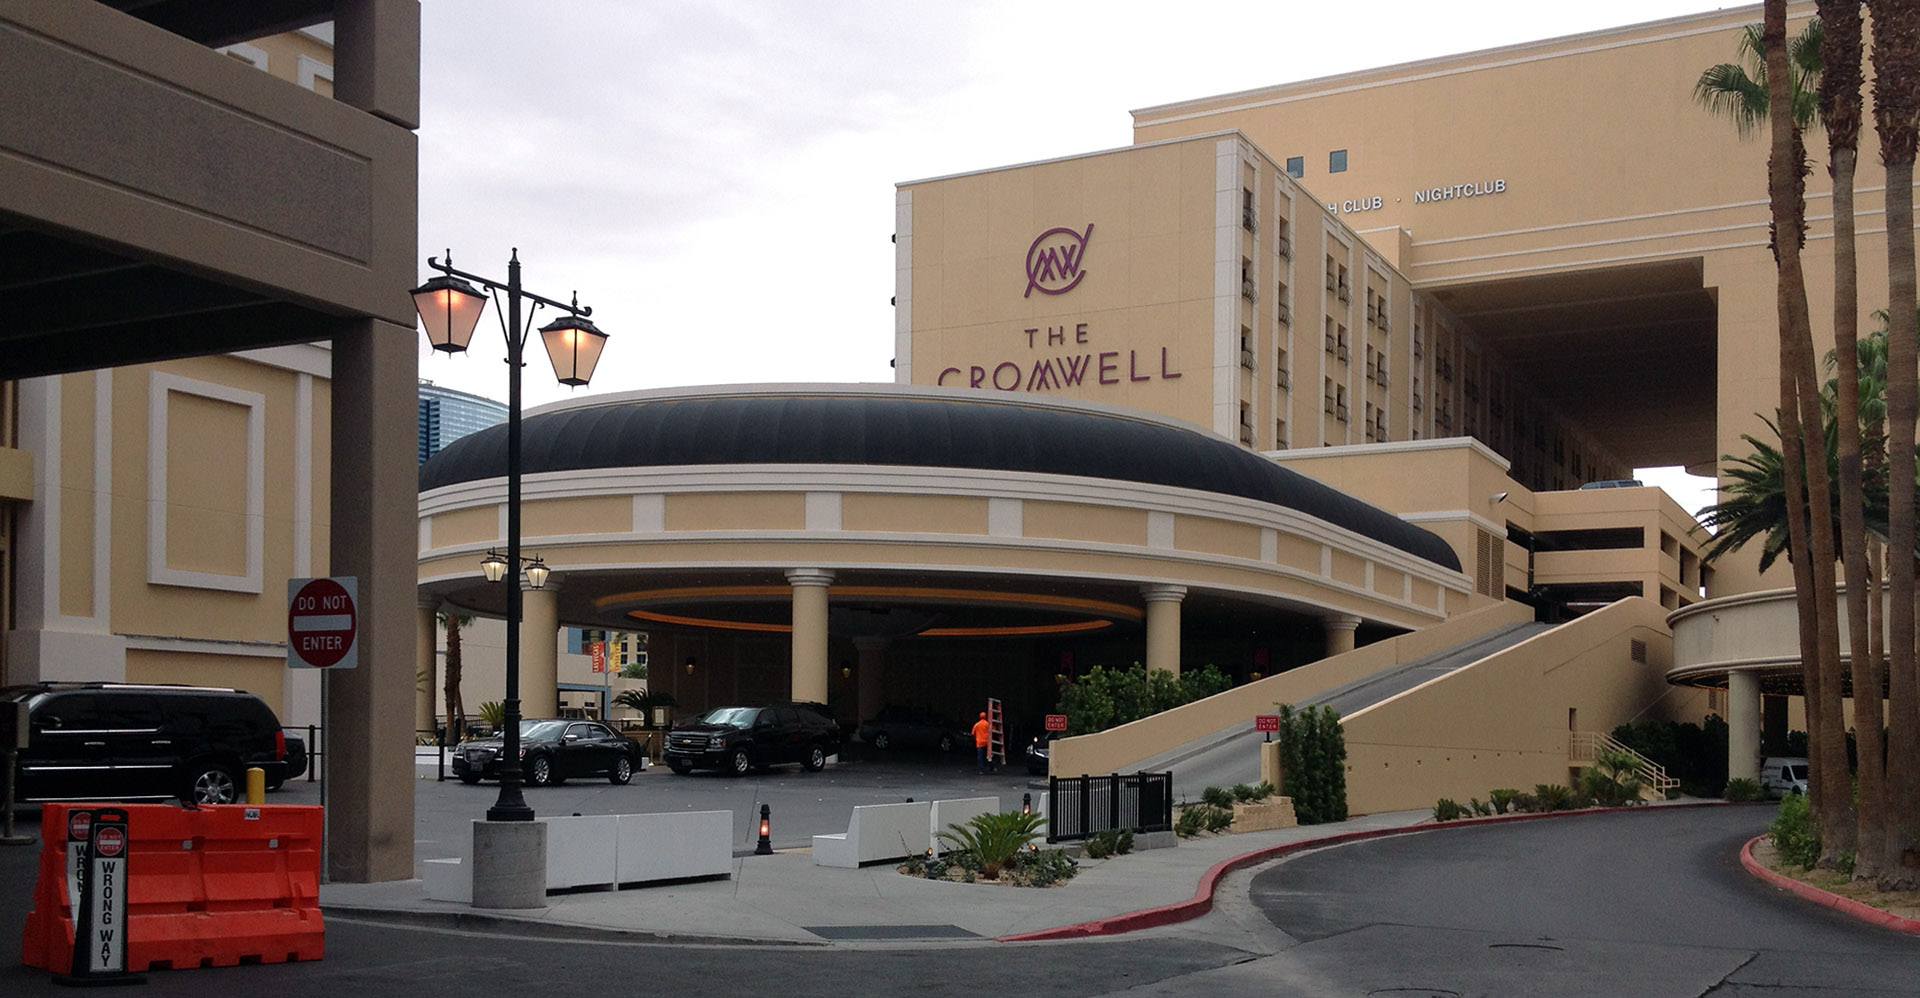 889e5ed7ed2 ... Tilly s Clothing Boca Park. Commercial Awning for The Cromwell in Las  Vegas